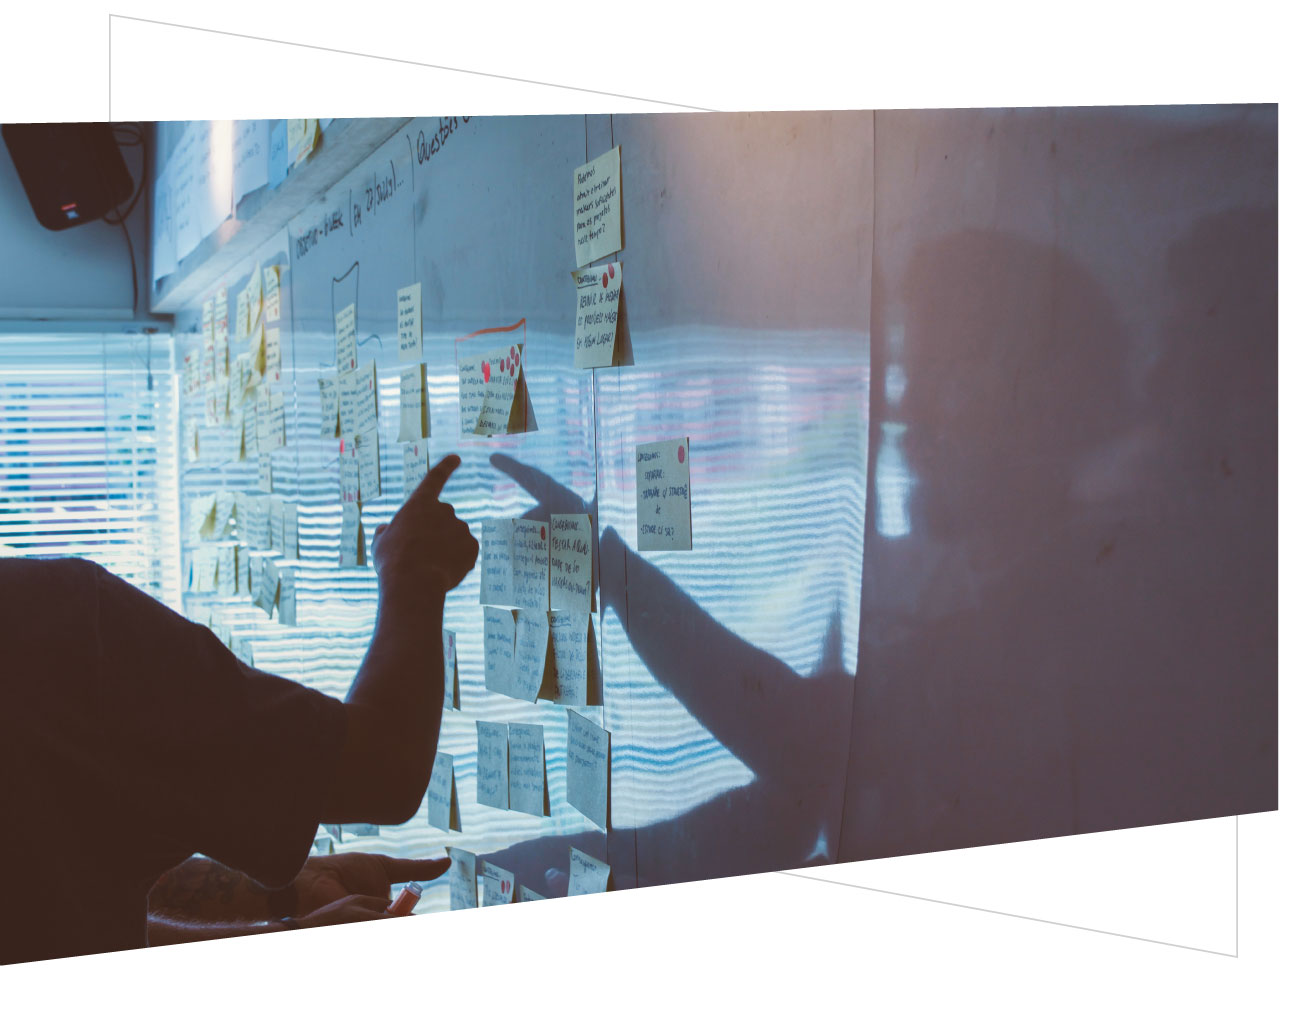 brainstorming session with many post it notes on a white board and man pointing at one